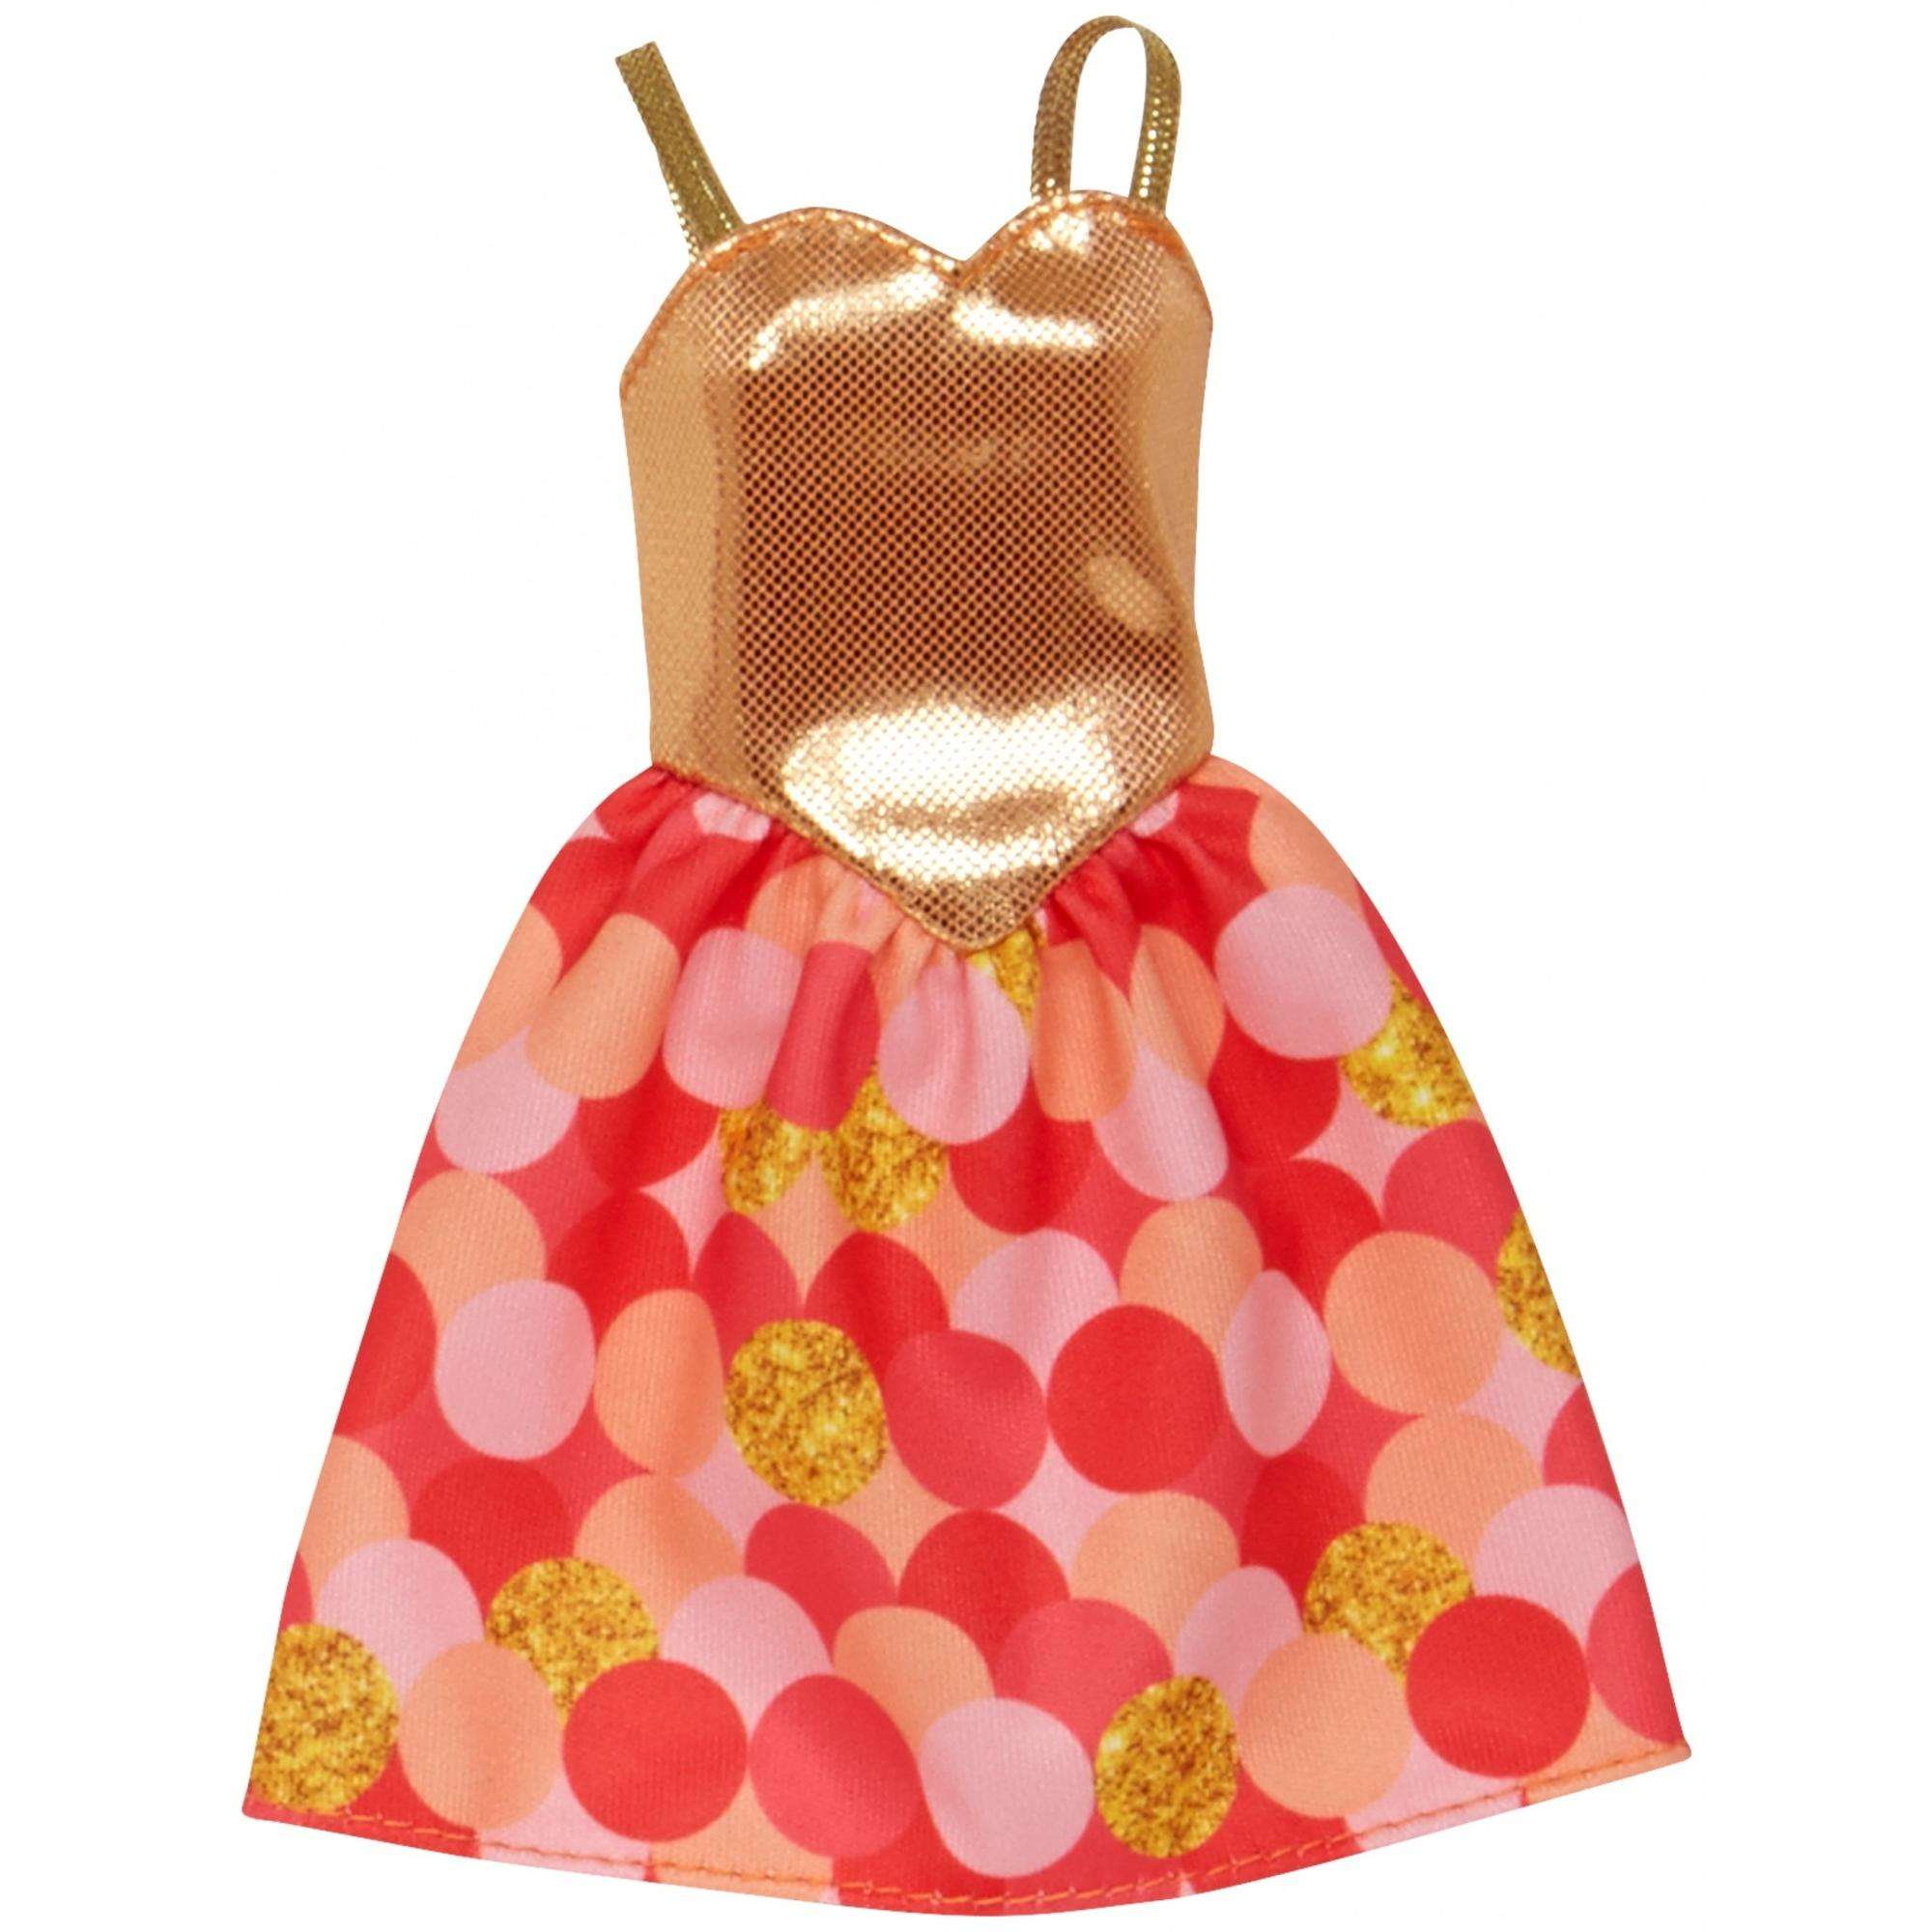 Barbie Trendy Gold Fashion Dress 13